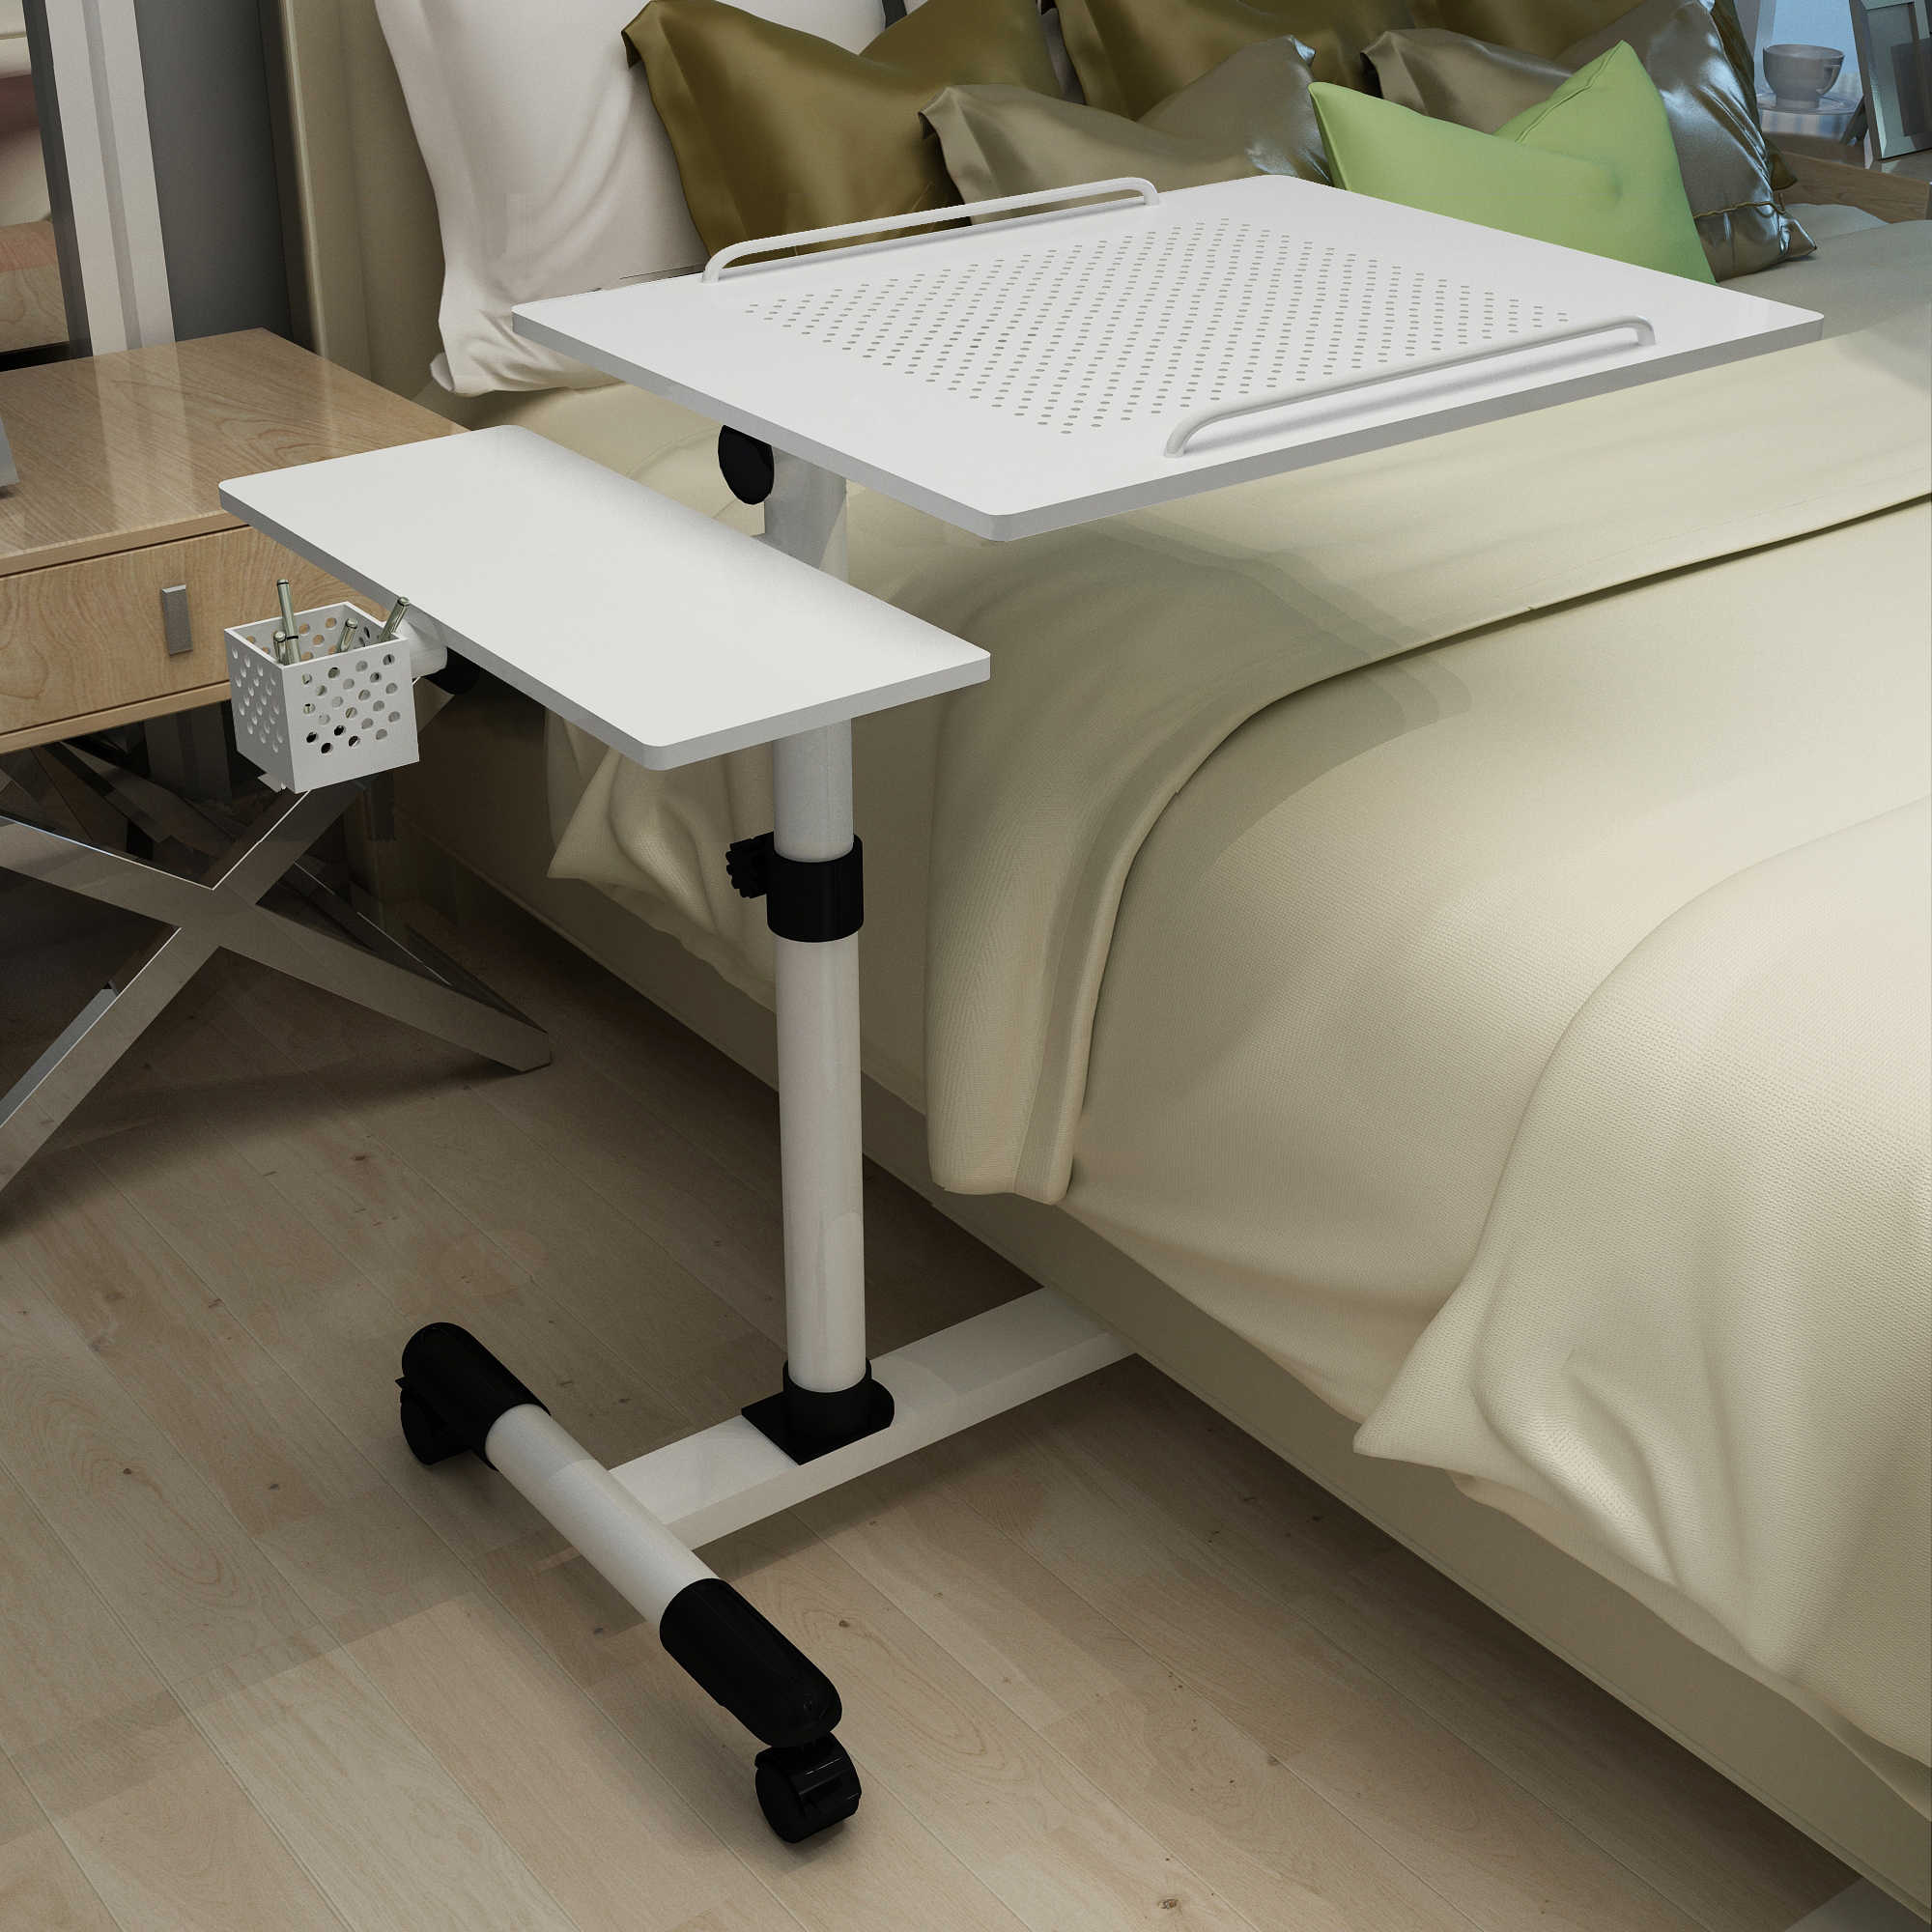 Laptop Table Sofa Bedside Table Overbed Table Adjustable Height Movable  Sturdy Notebook Computer Stand Desk with Wheels